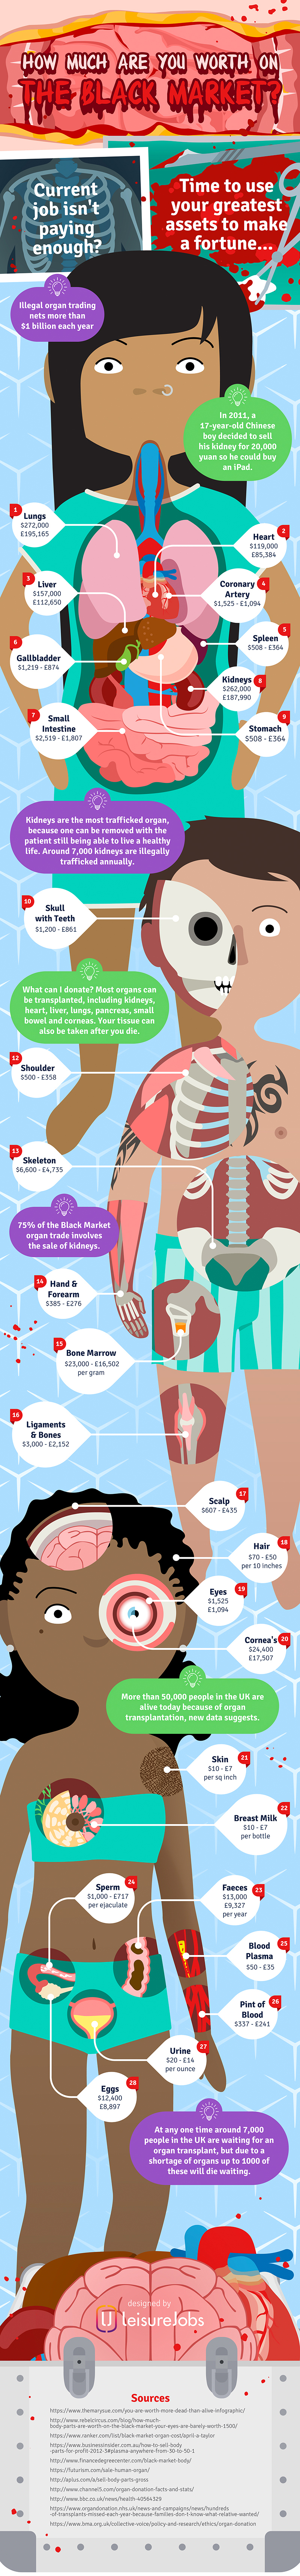 Profiting from Body Parts: Prices in the Illegal Organ Market - Infographic